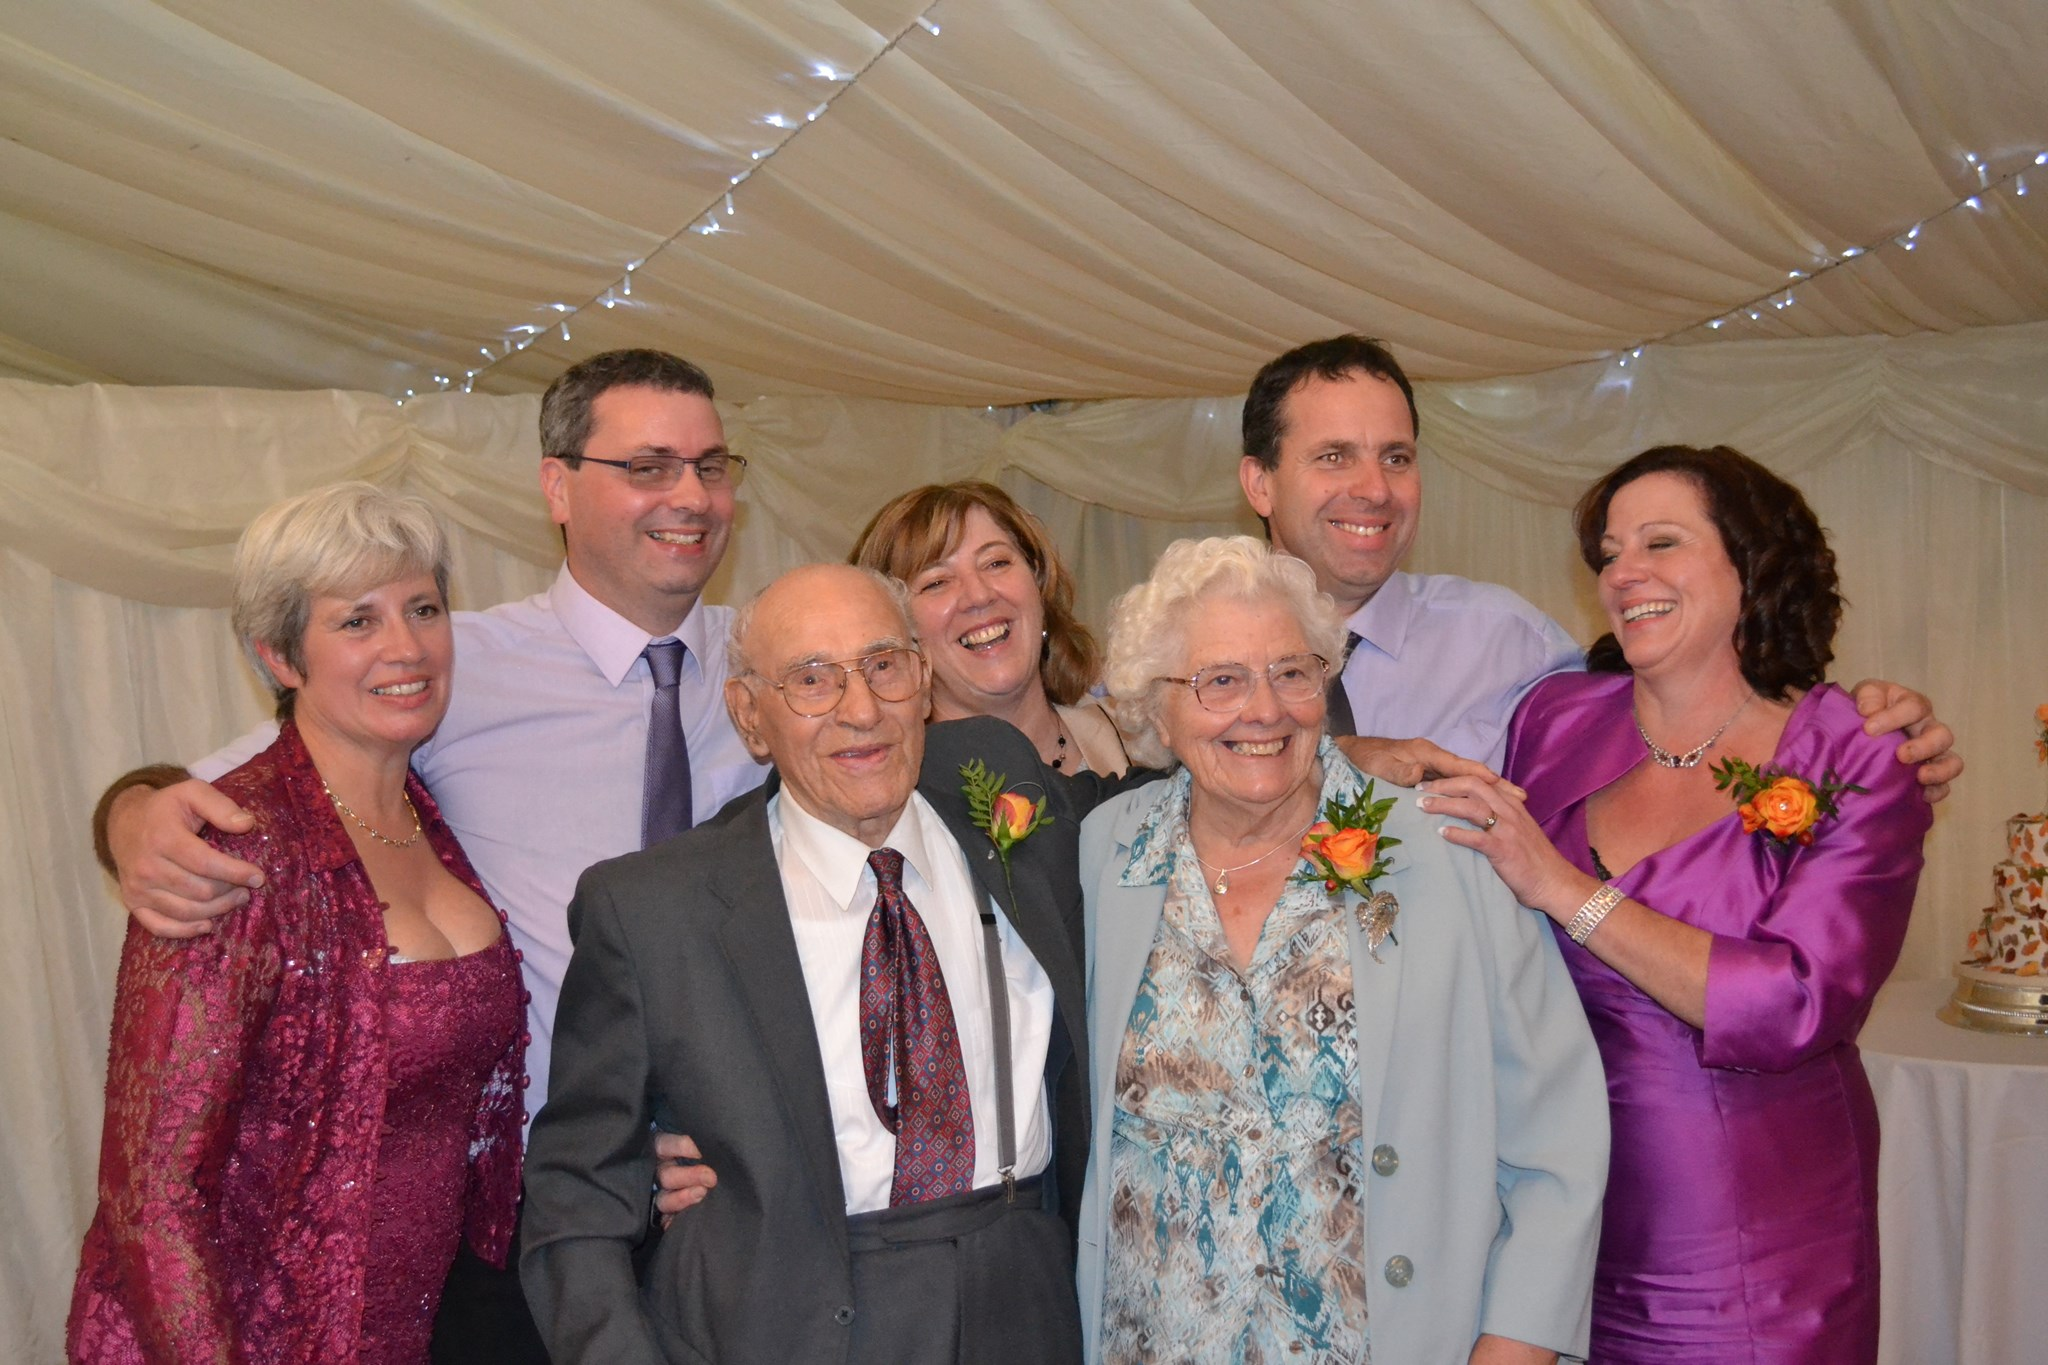 Kath and family, always happy when together, never far apart. God Bless. X